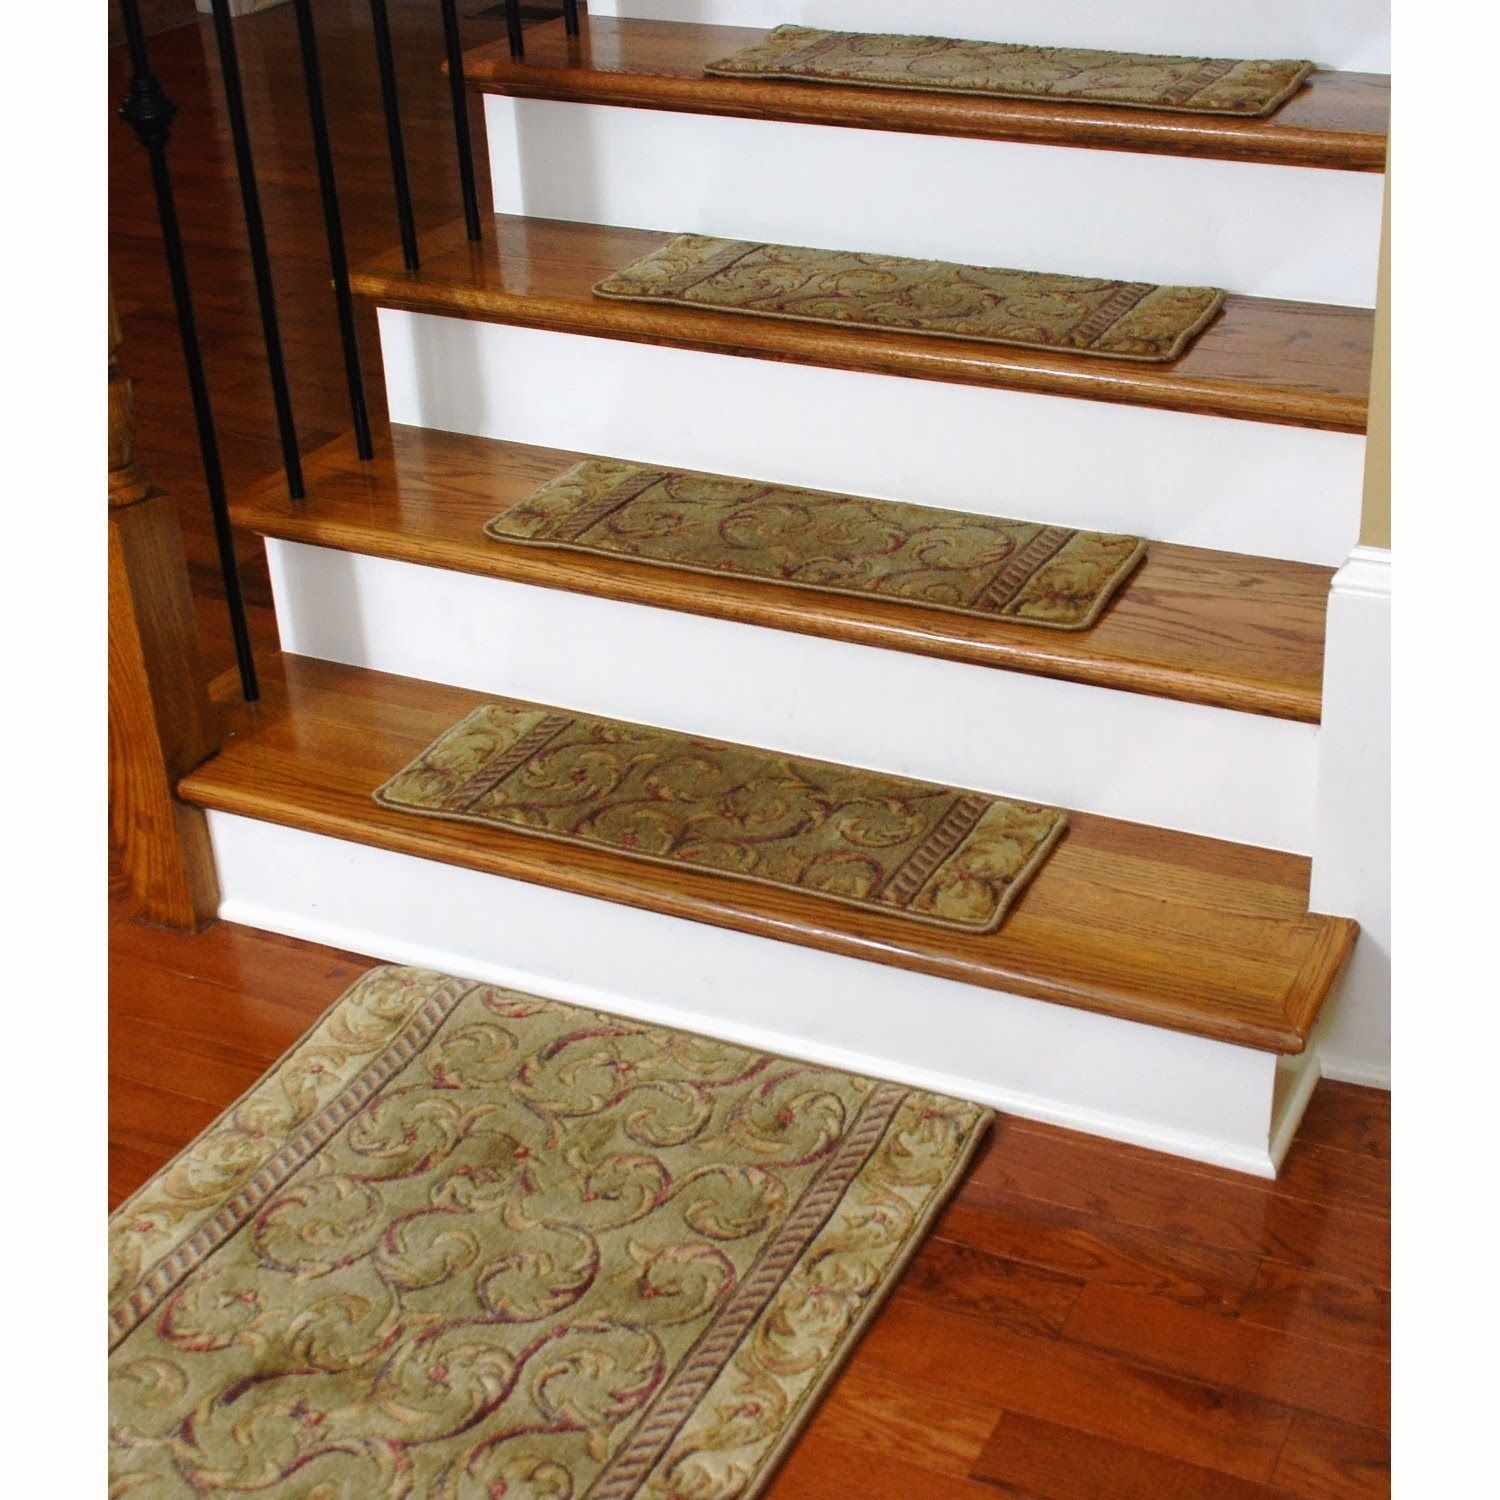 Stair Treads Carpet Stair Treads Carpet Carpets Collection Within Carpet Step Covers For Stairs (Image 13 of 15)